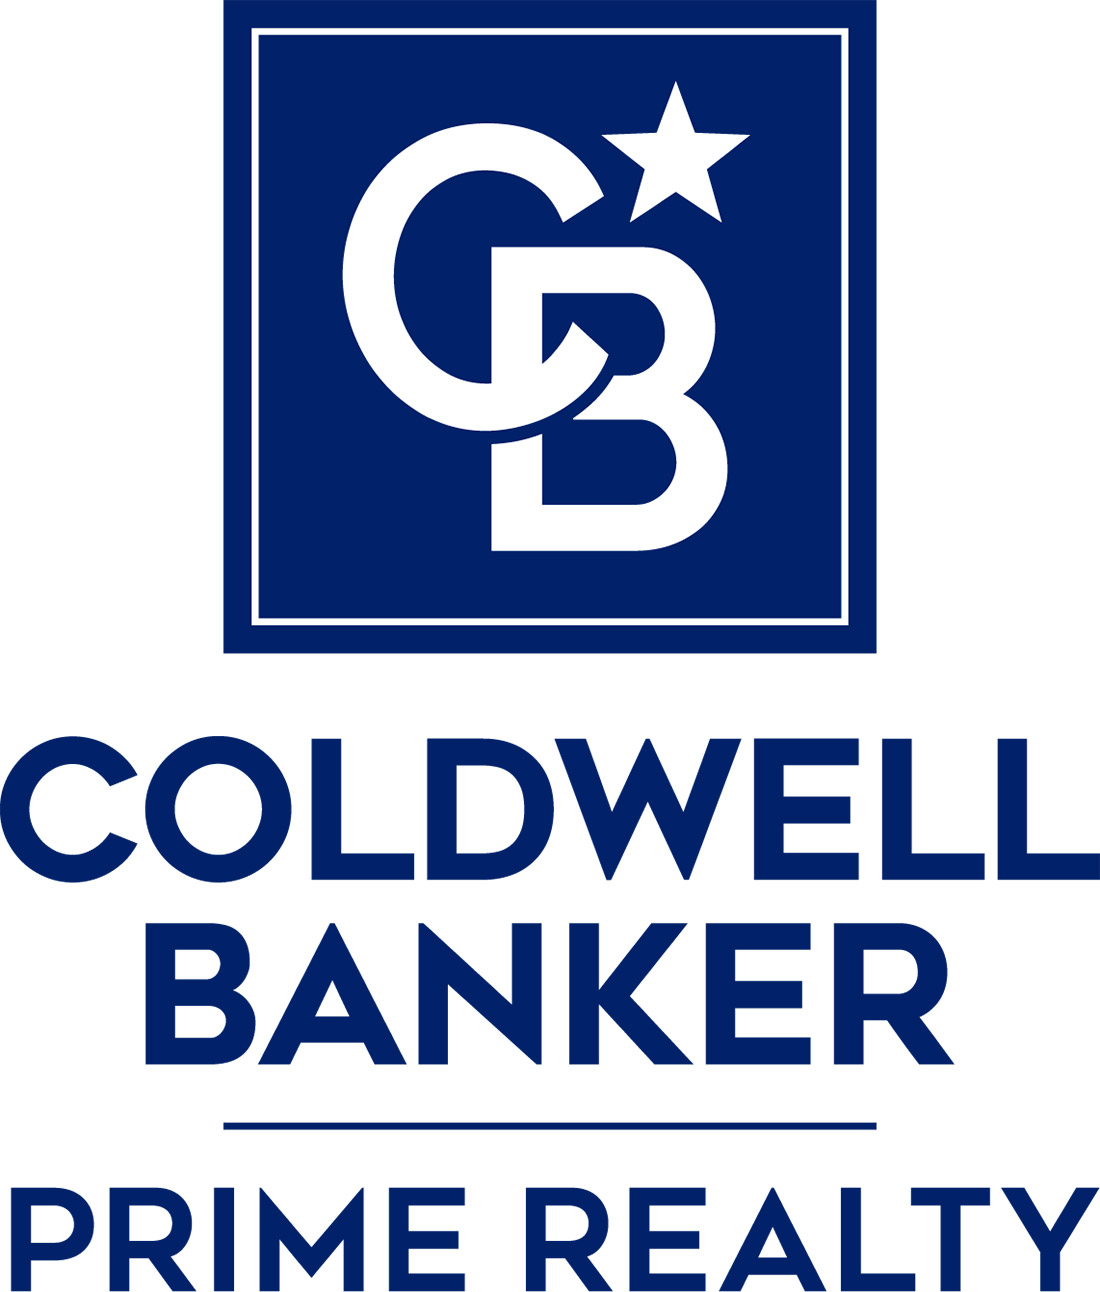 Coldwell Banker Prime Realty - Carbondale, Carterville, Energy, Marion, and Murphysboro Logo